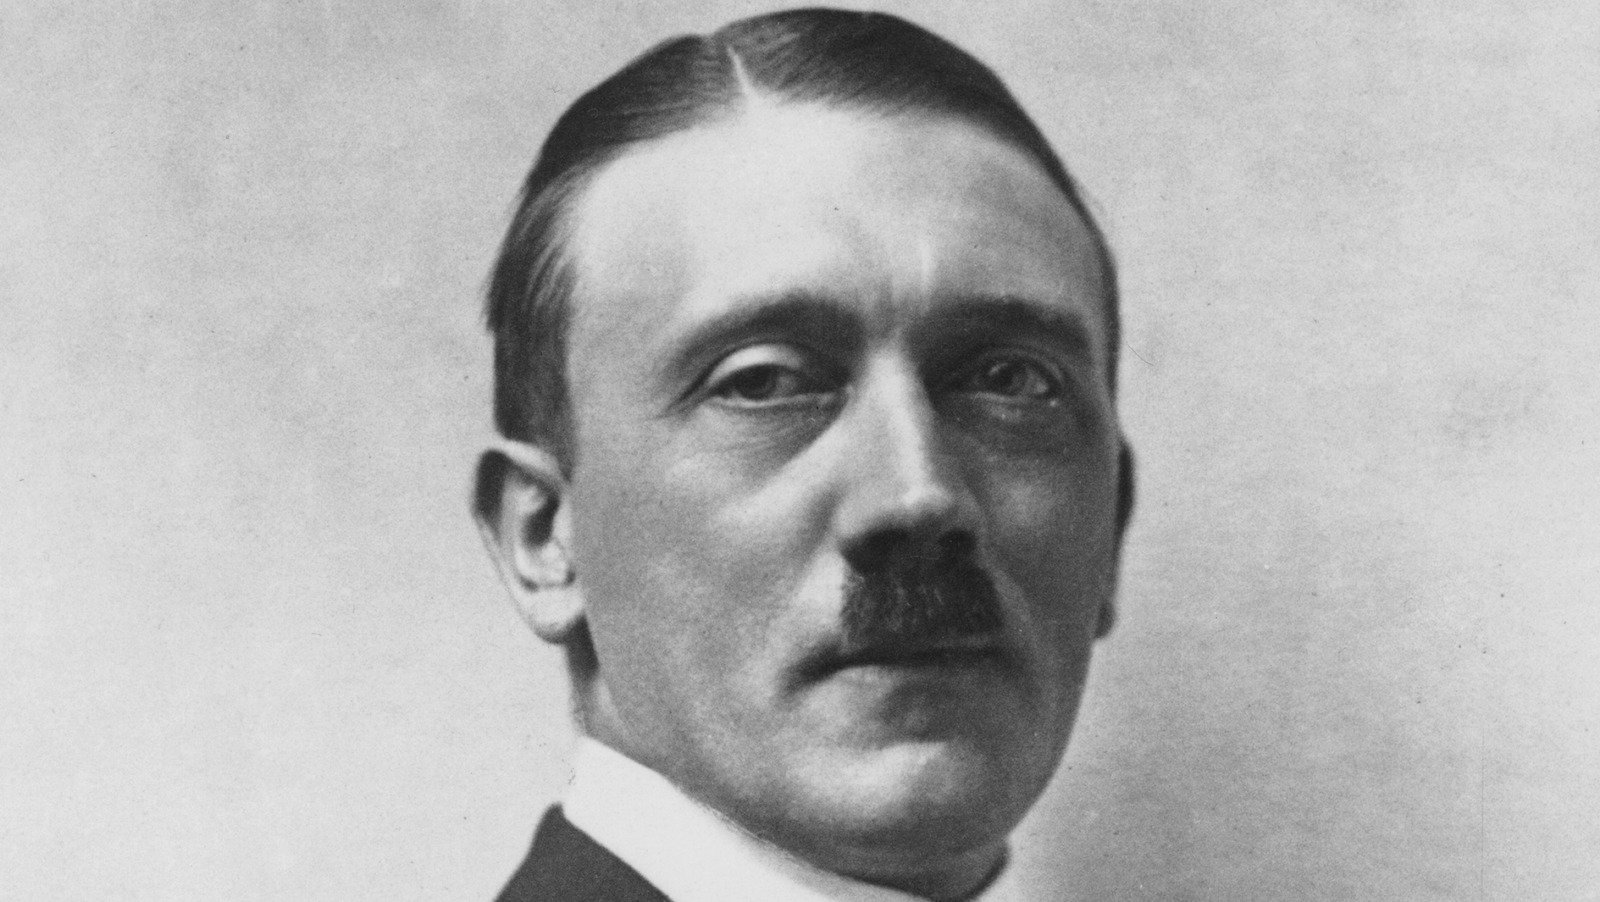 What You Don't Know About Hitler's Dog Blondi